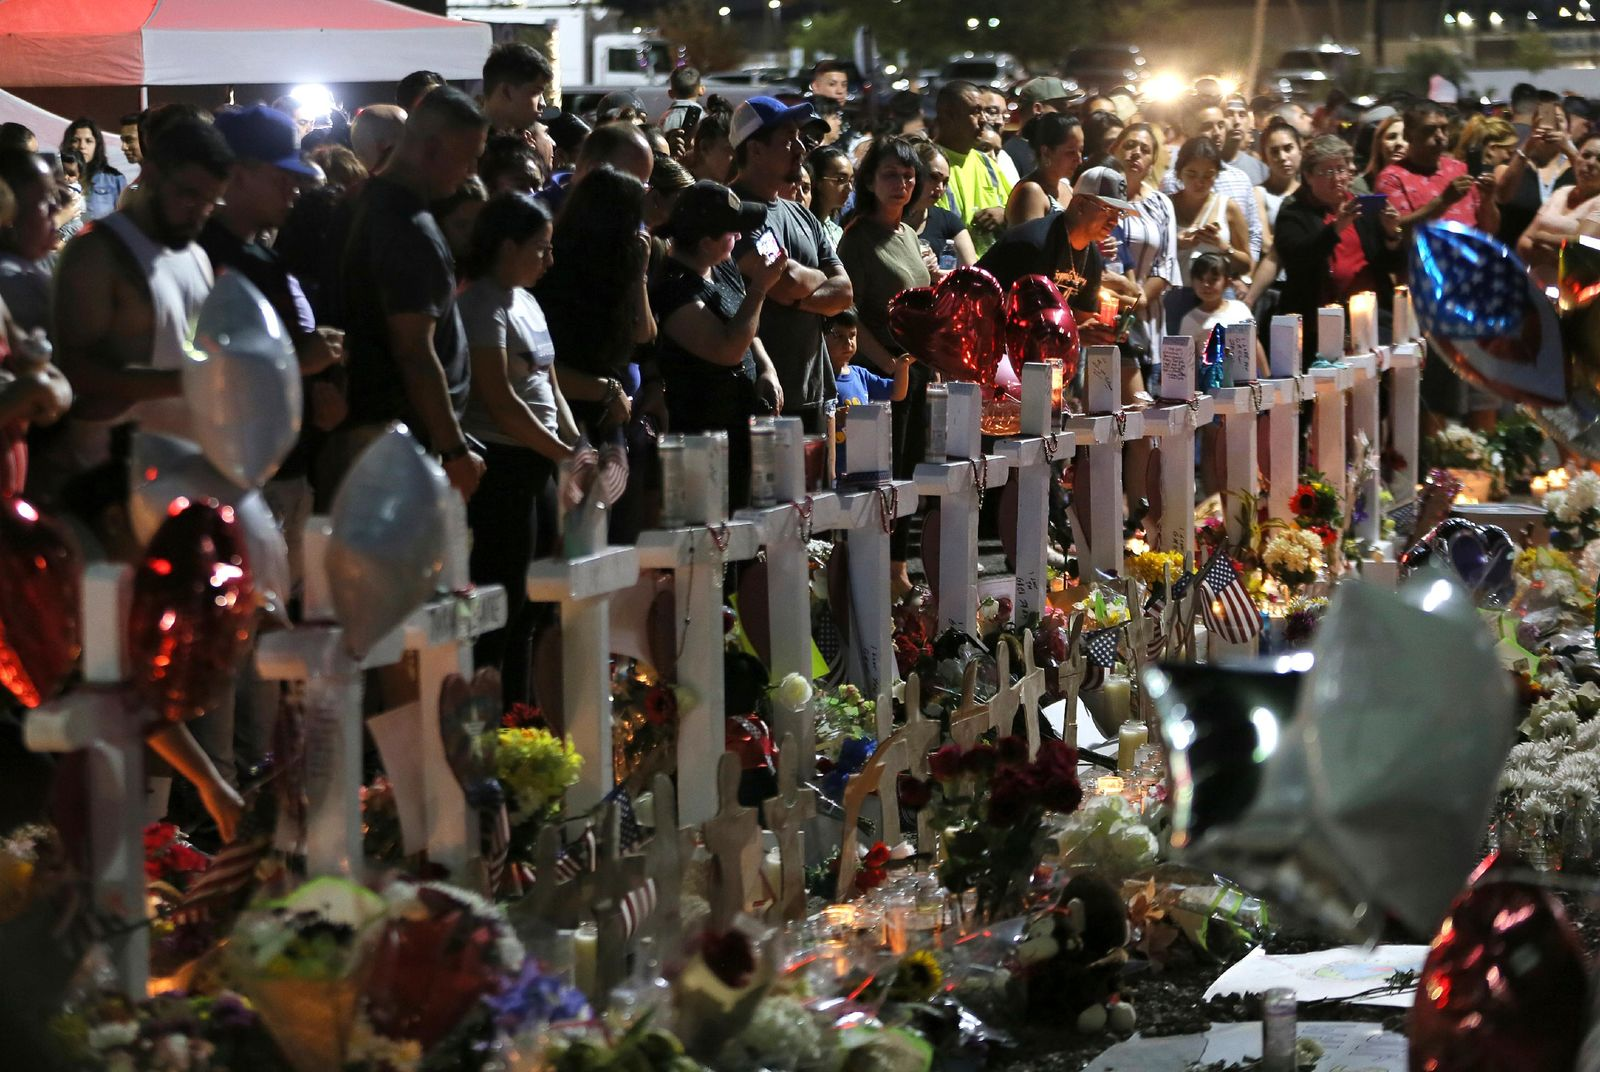 Hundreds of people hold vigil Monday, Aug. 5, 2019, outside the Walmart in El Paso, Texas, where a mass shooting took place on Saturday. (Mark Lambie/The El Paso Times via AP)